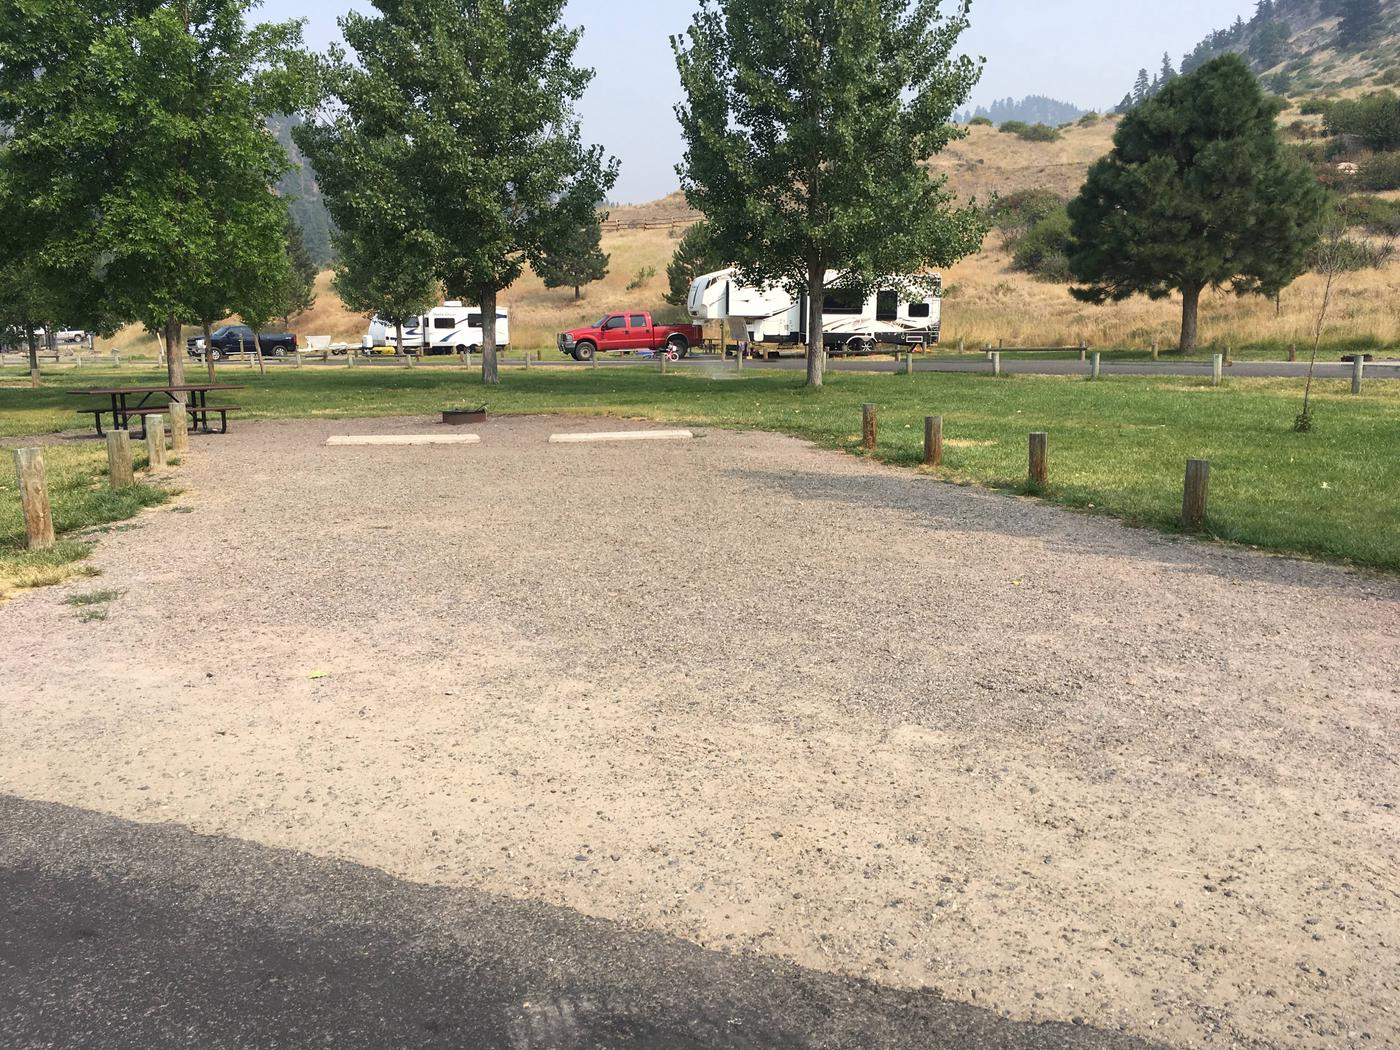 Site 4 at Holter Lake Campground. Graveled campsite with picnic table and fire pit in the background. Graveled site surrounded by wooden posts to keep parking limited to the graveled and paved surfaces. 3 large trees in the background.Site 4 BLM Holter Lake Campground.